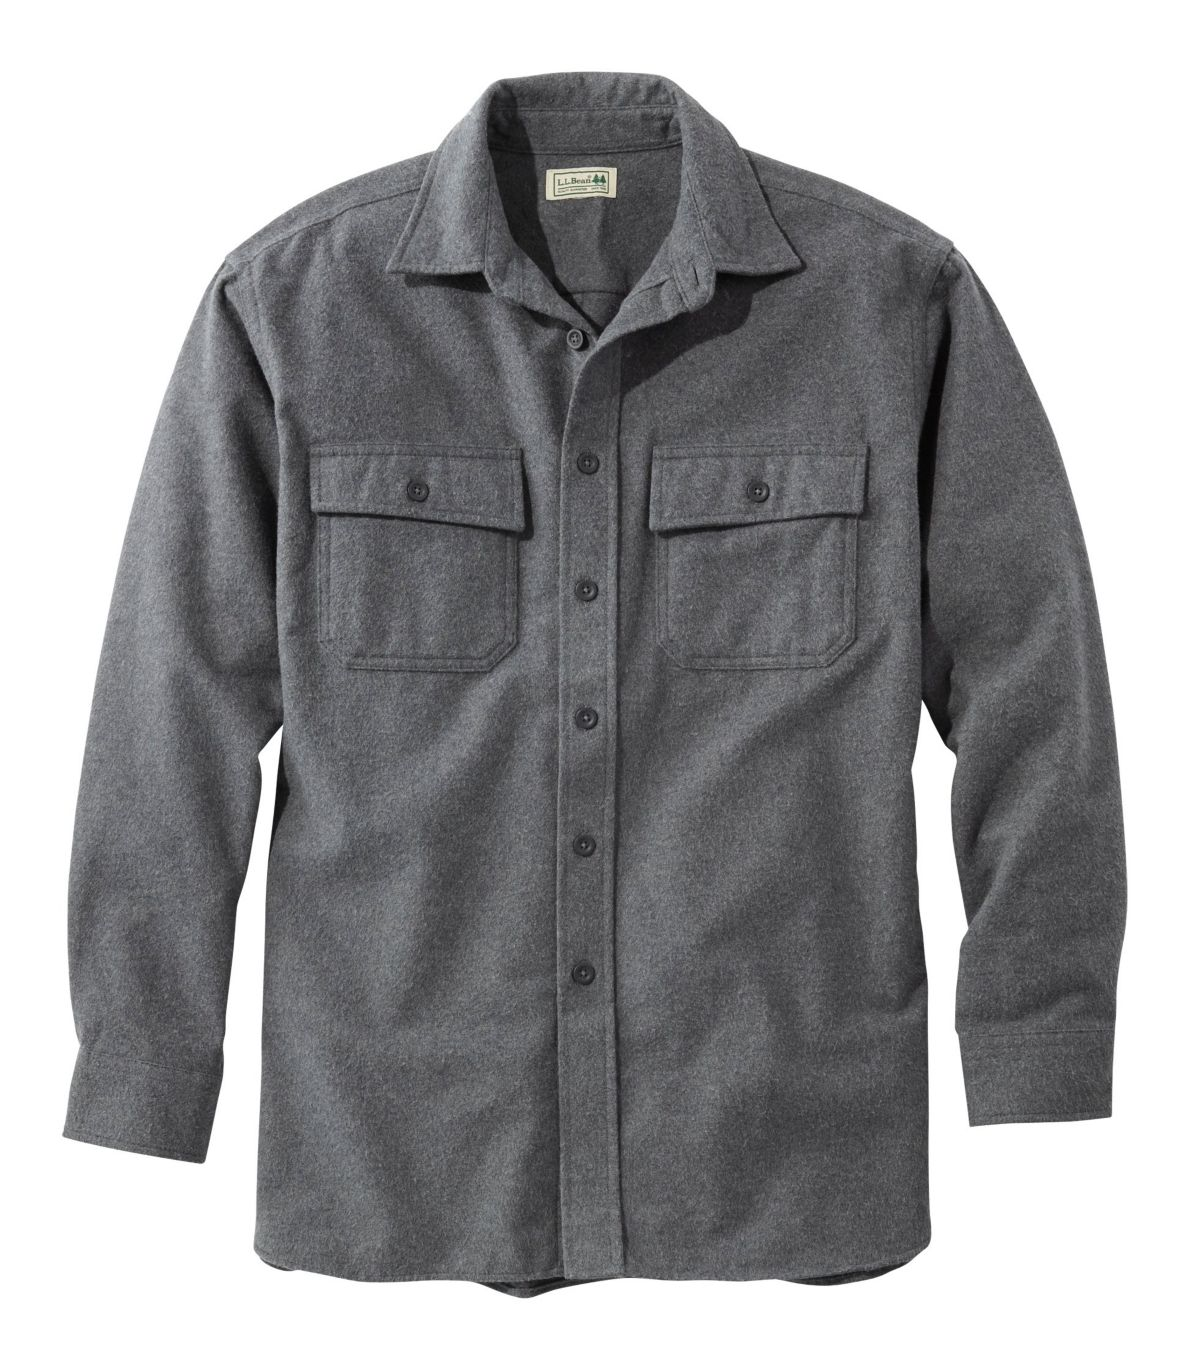 Men's Chamois Shirt, Traditional Fit